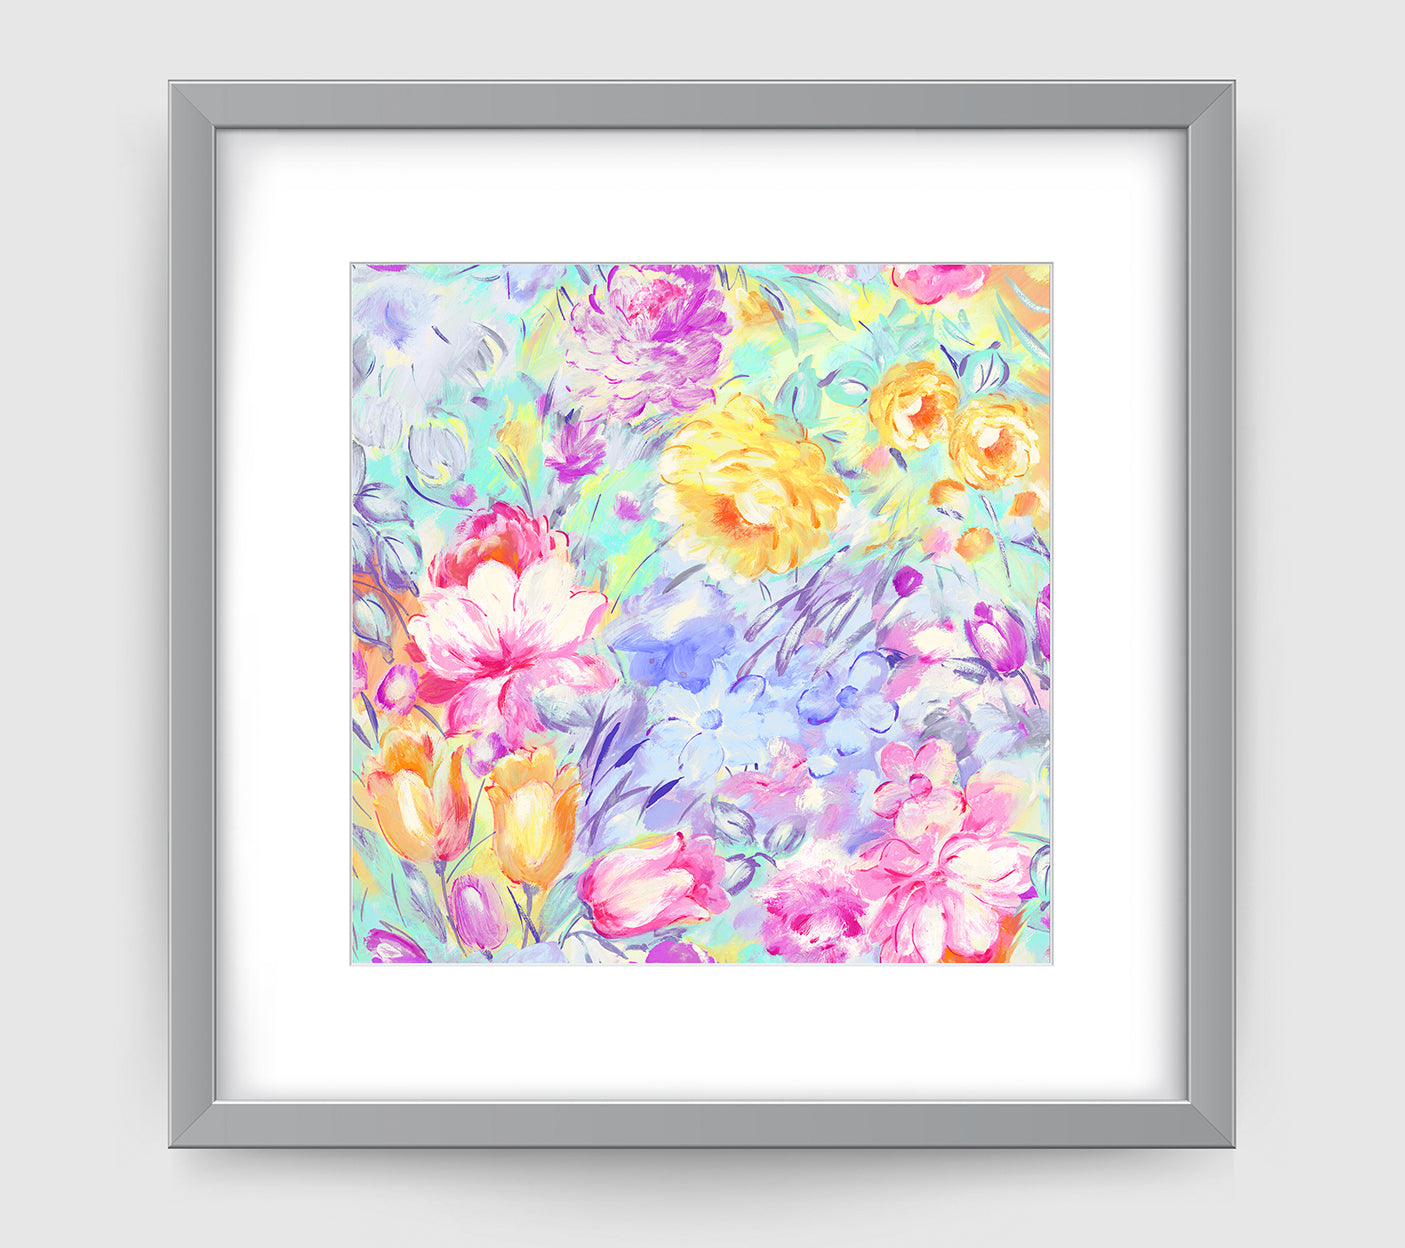 Primavera Art Print - Impressionist Art Wall Decor Collection-Di Lewis